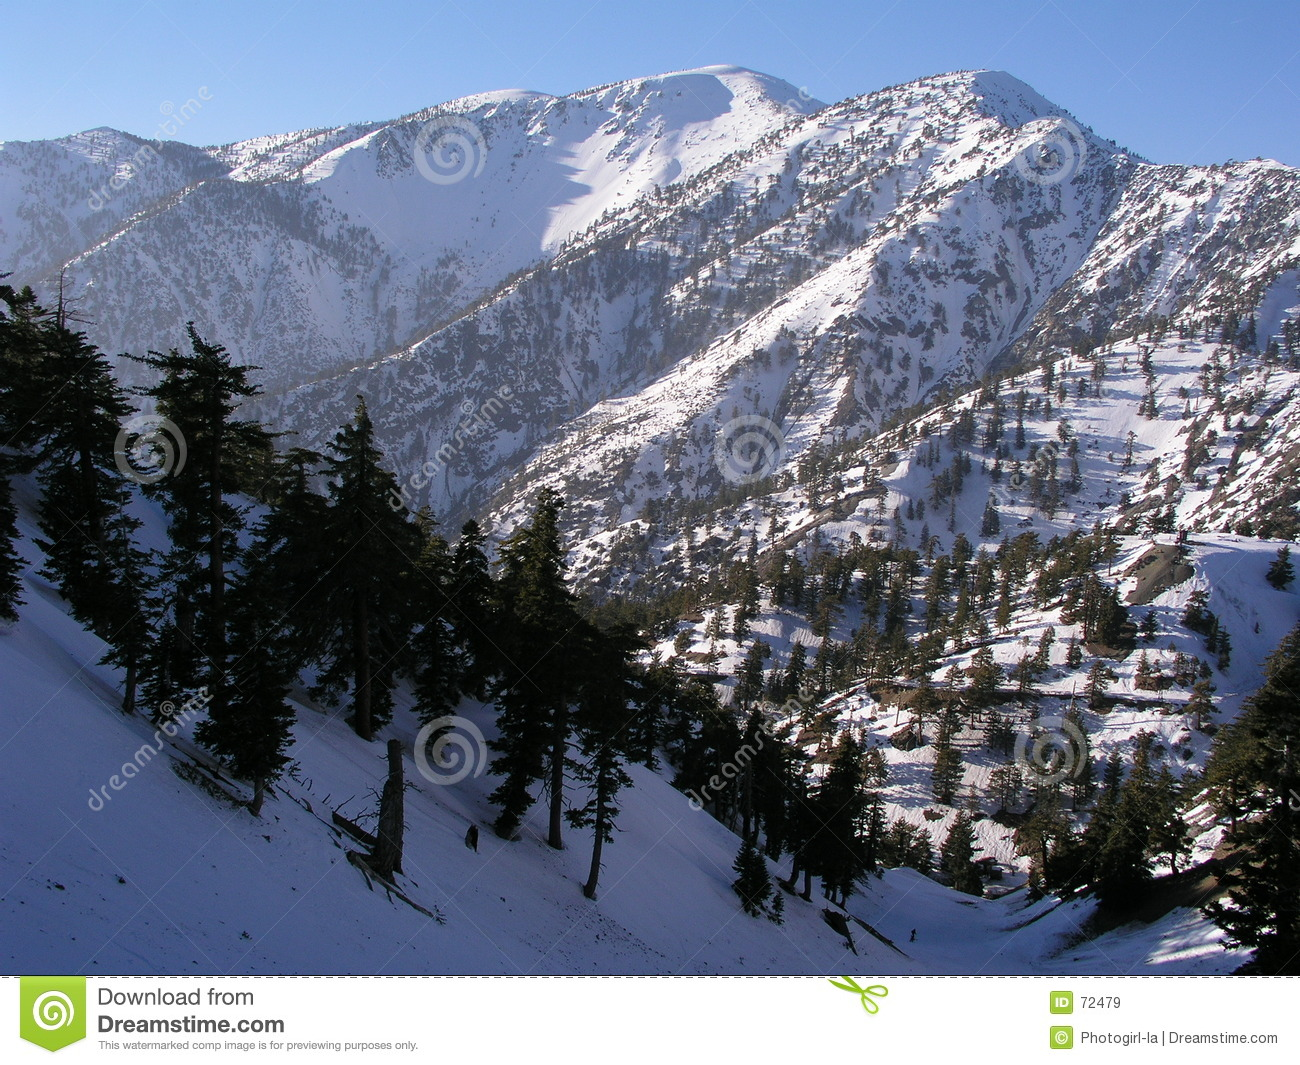 mt baldy online dating Mount baldy lodge, mount baldy: see 32 traveler reviews, 39 candid photos, and great deals for mount baldy lodge, ranked #1 of 1 hotel in mount baldy and rated 4 of 5 at tripadvisor.